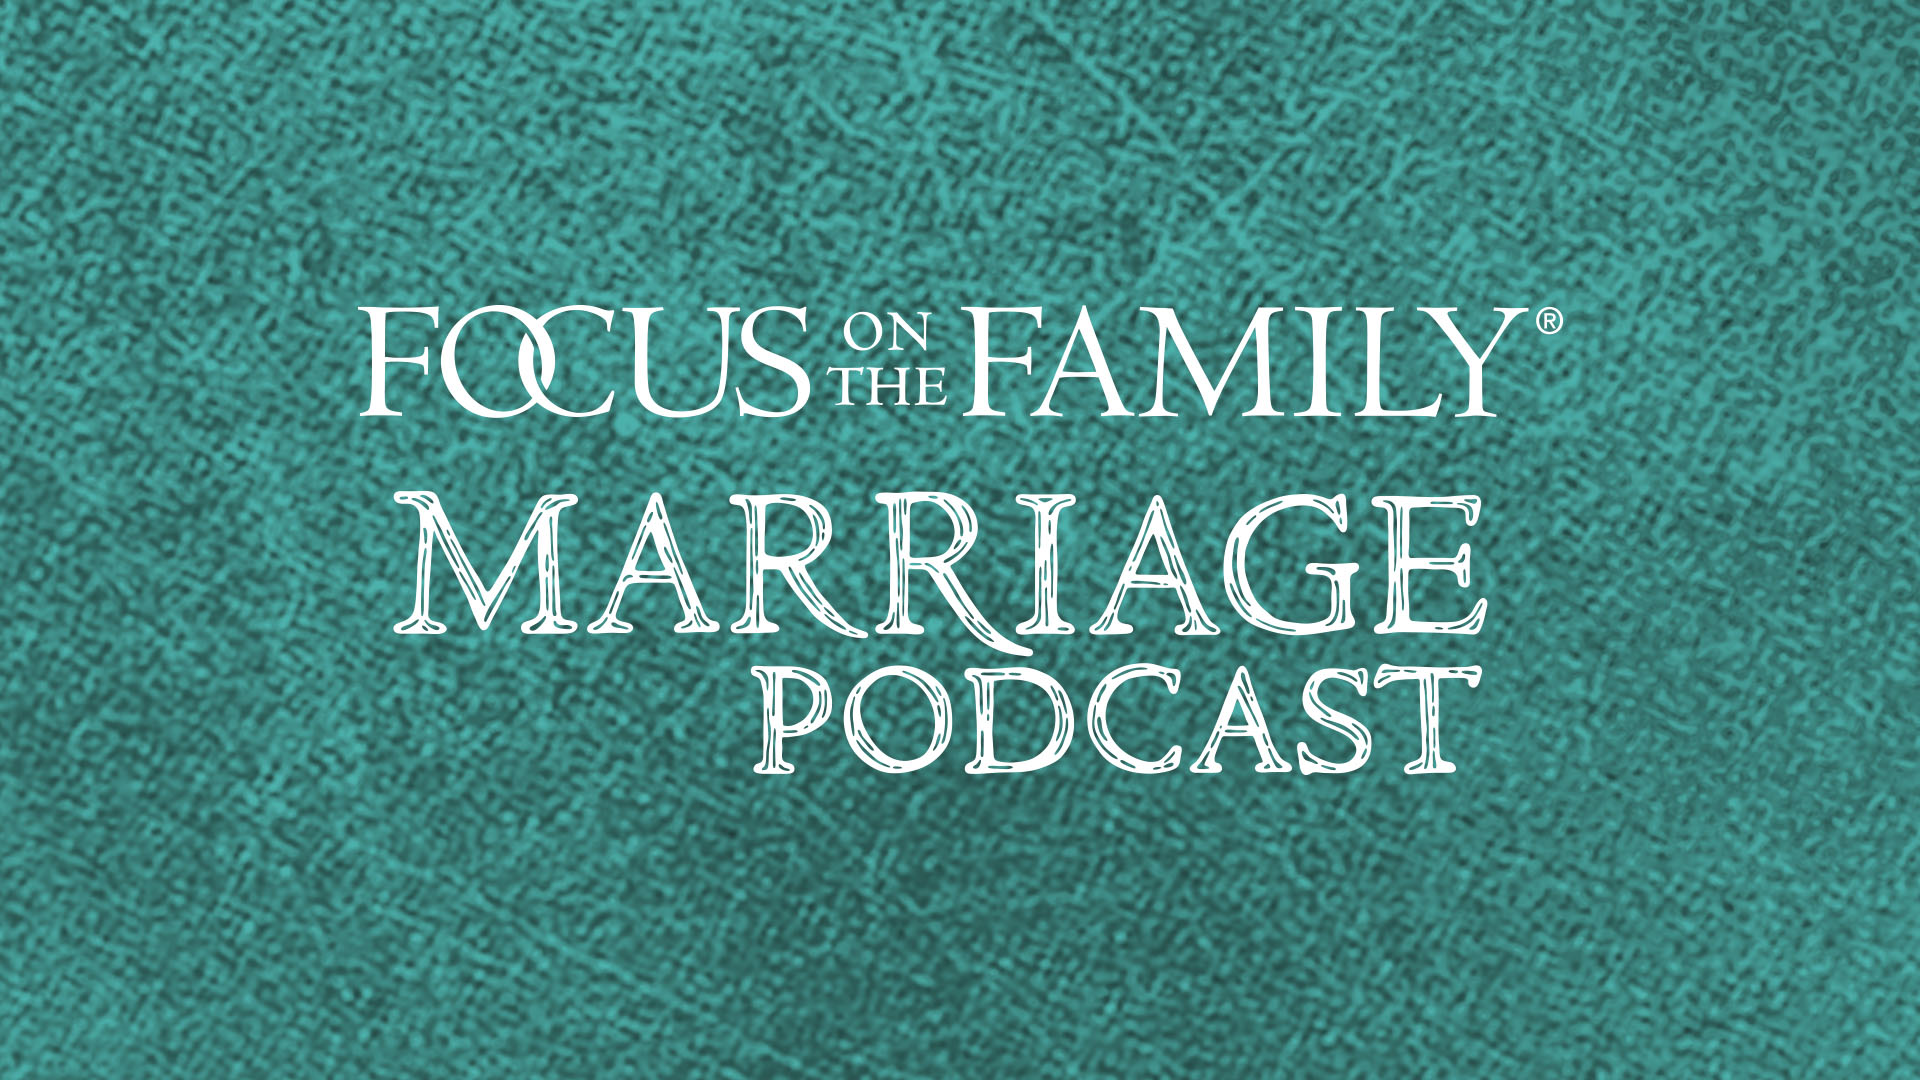 Focus on Marriage Podcast - Focus on the Family